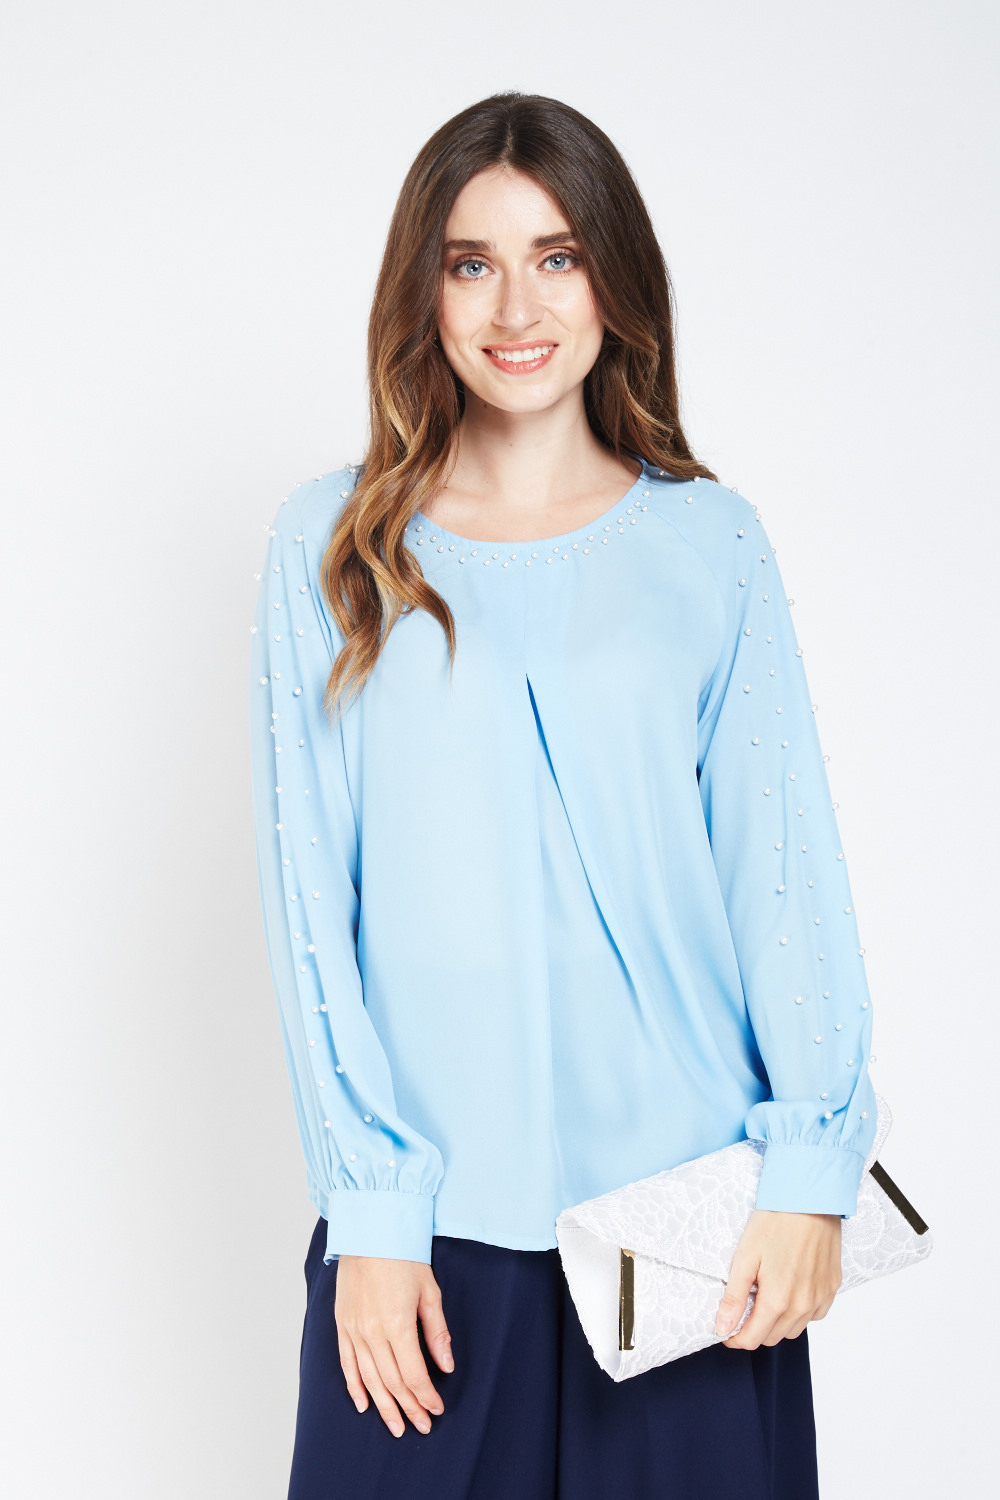 Faux Pearl Embellished Sheer Blouse Sky Blue Just 163 5